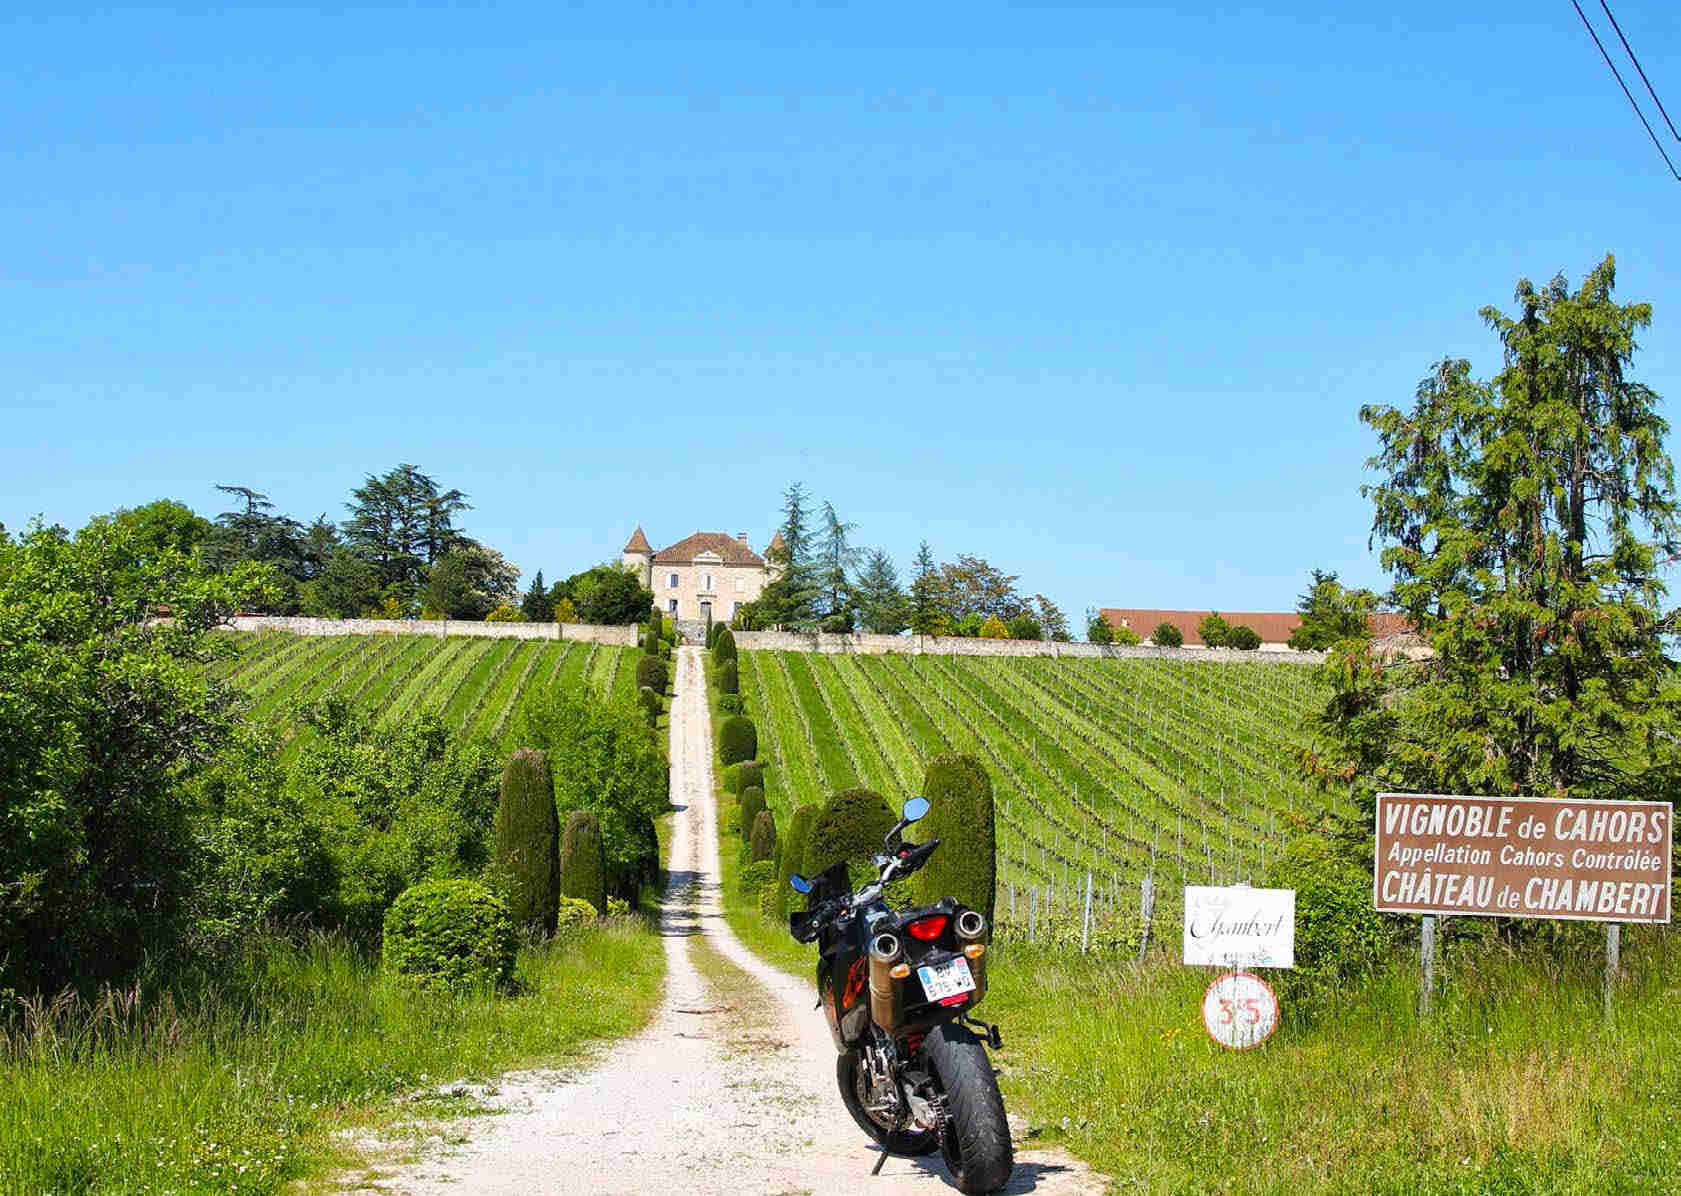 KTM parked at the start of the long gravel drive running up the  hill to the Chateau de Chambert, with vineyards either side.